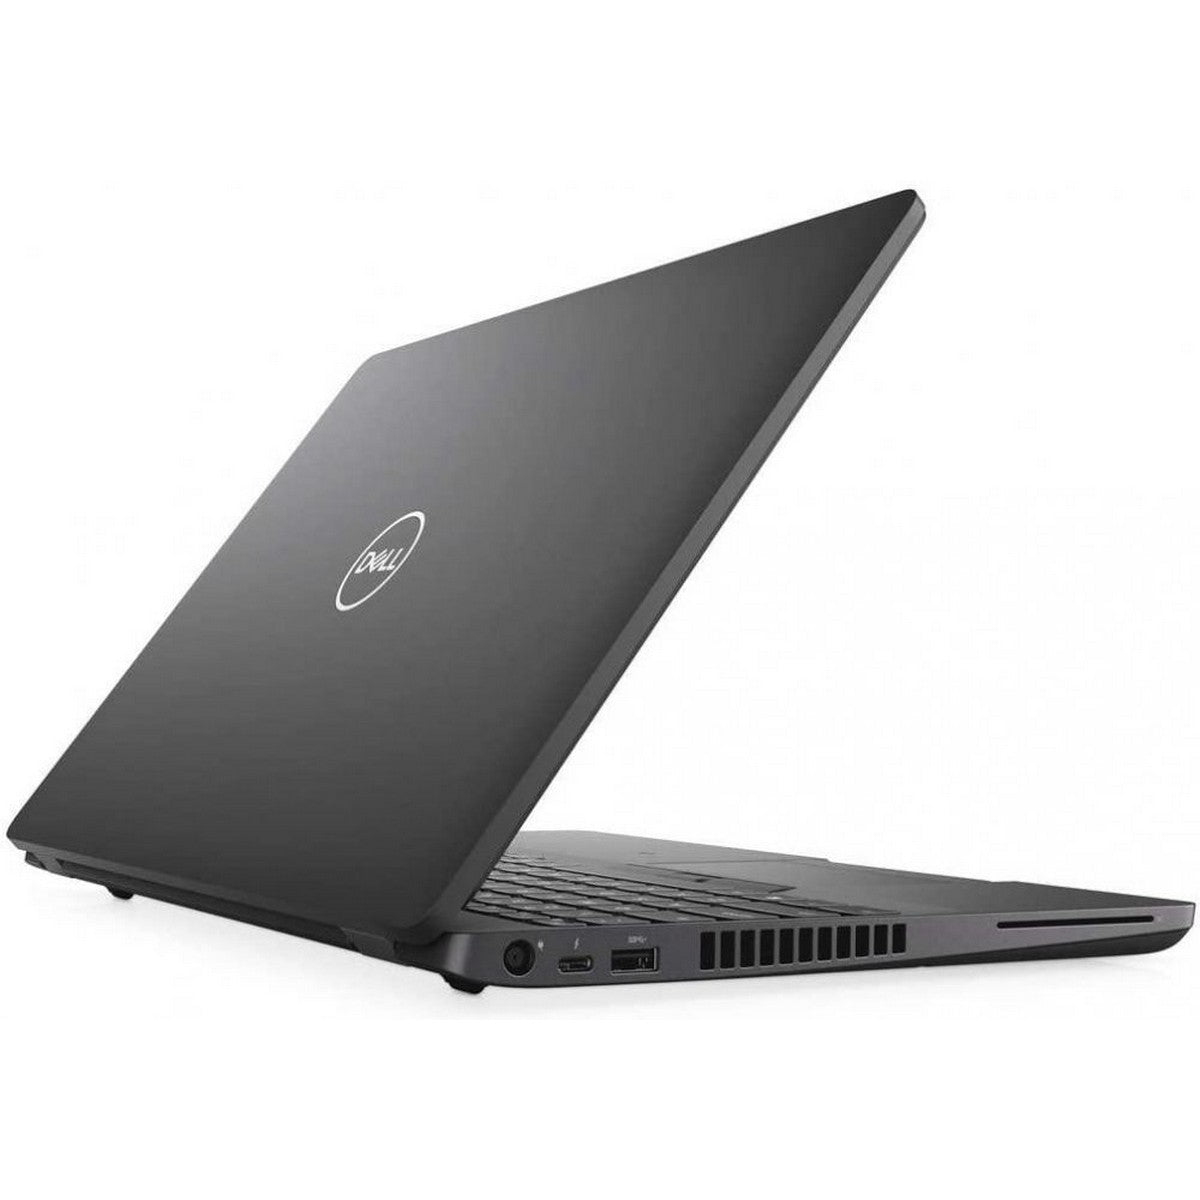 Dell Latitude 5500 Business Laptop 15.6'' FHD , Intel Core i7 i7-8665U 1.90 GHz 8M Cache up to 4.80 GHz, 8GB RAM, Radeon 540X 2GB GPU, 1TB HDD, Windows 10 Pro, Black